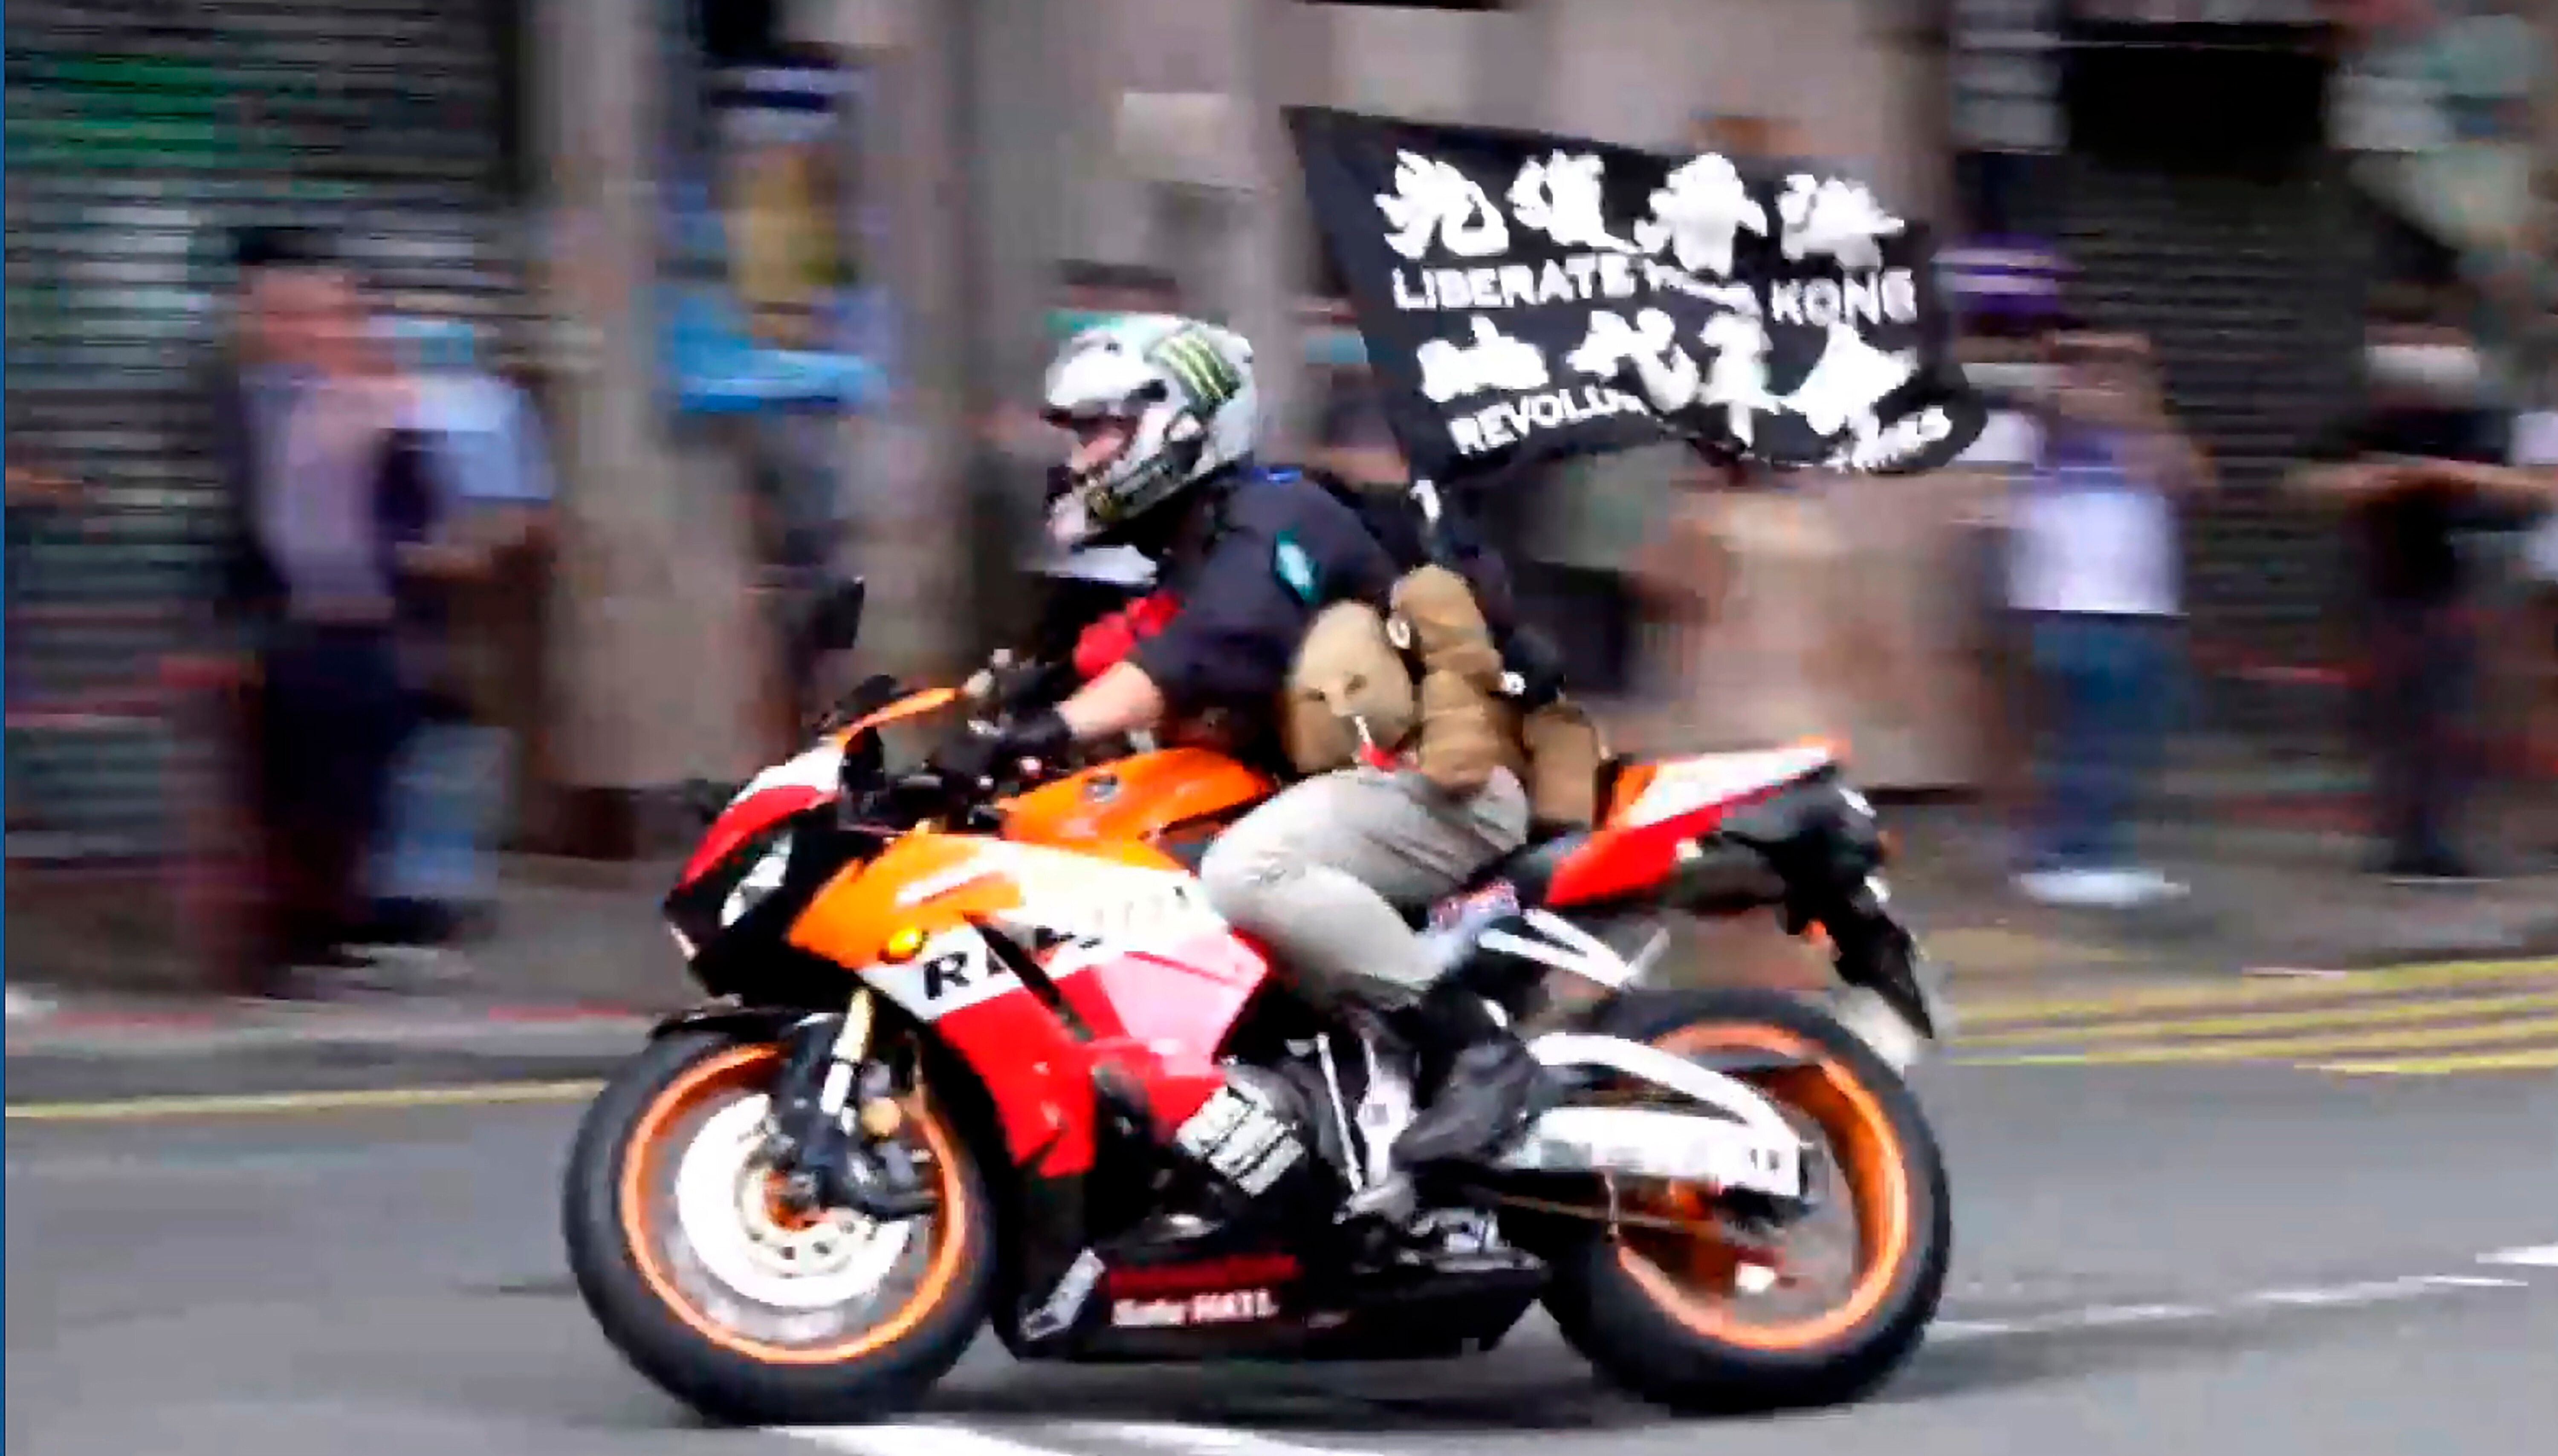 """In this July 1, 2020, file image made from video, motorcyclist Tong Ying-kit carries a flag reading """"Liberate Hong Kong, Revo"""